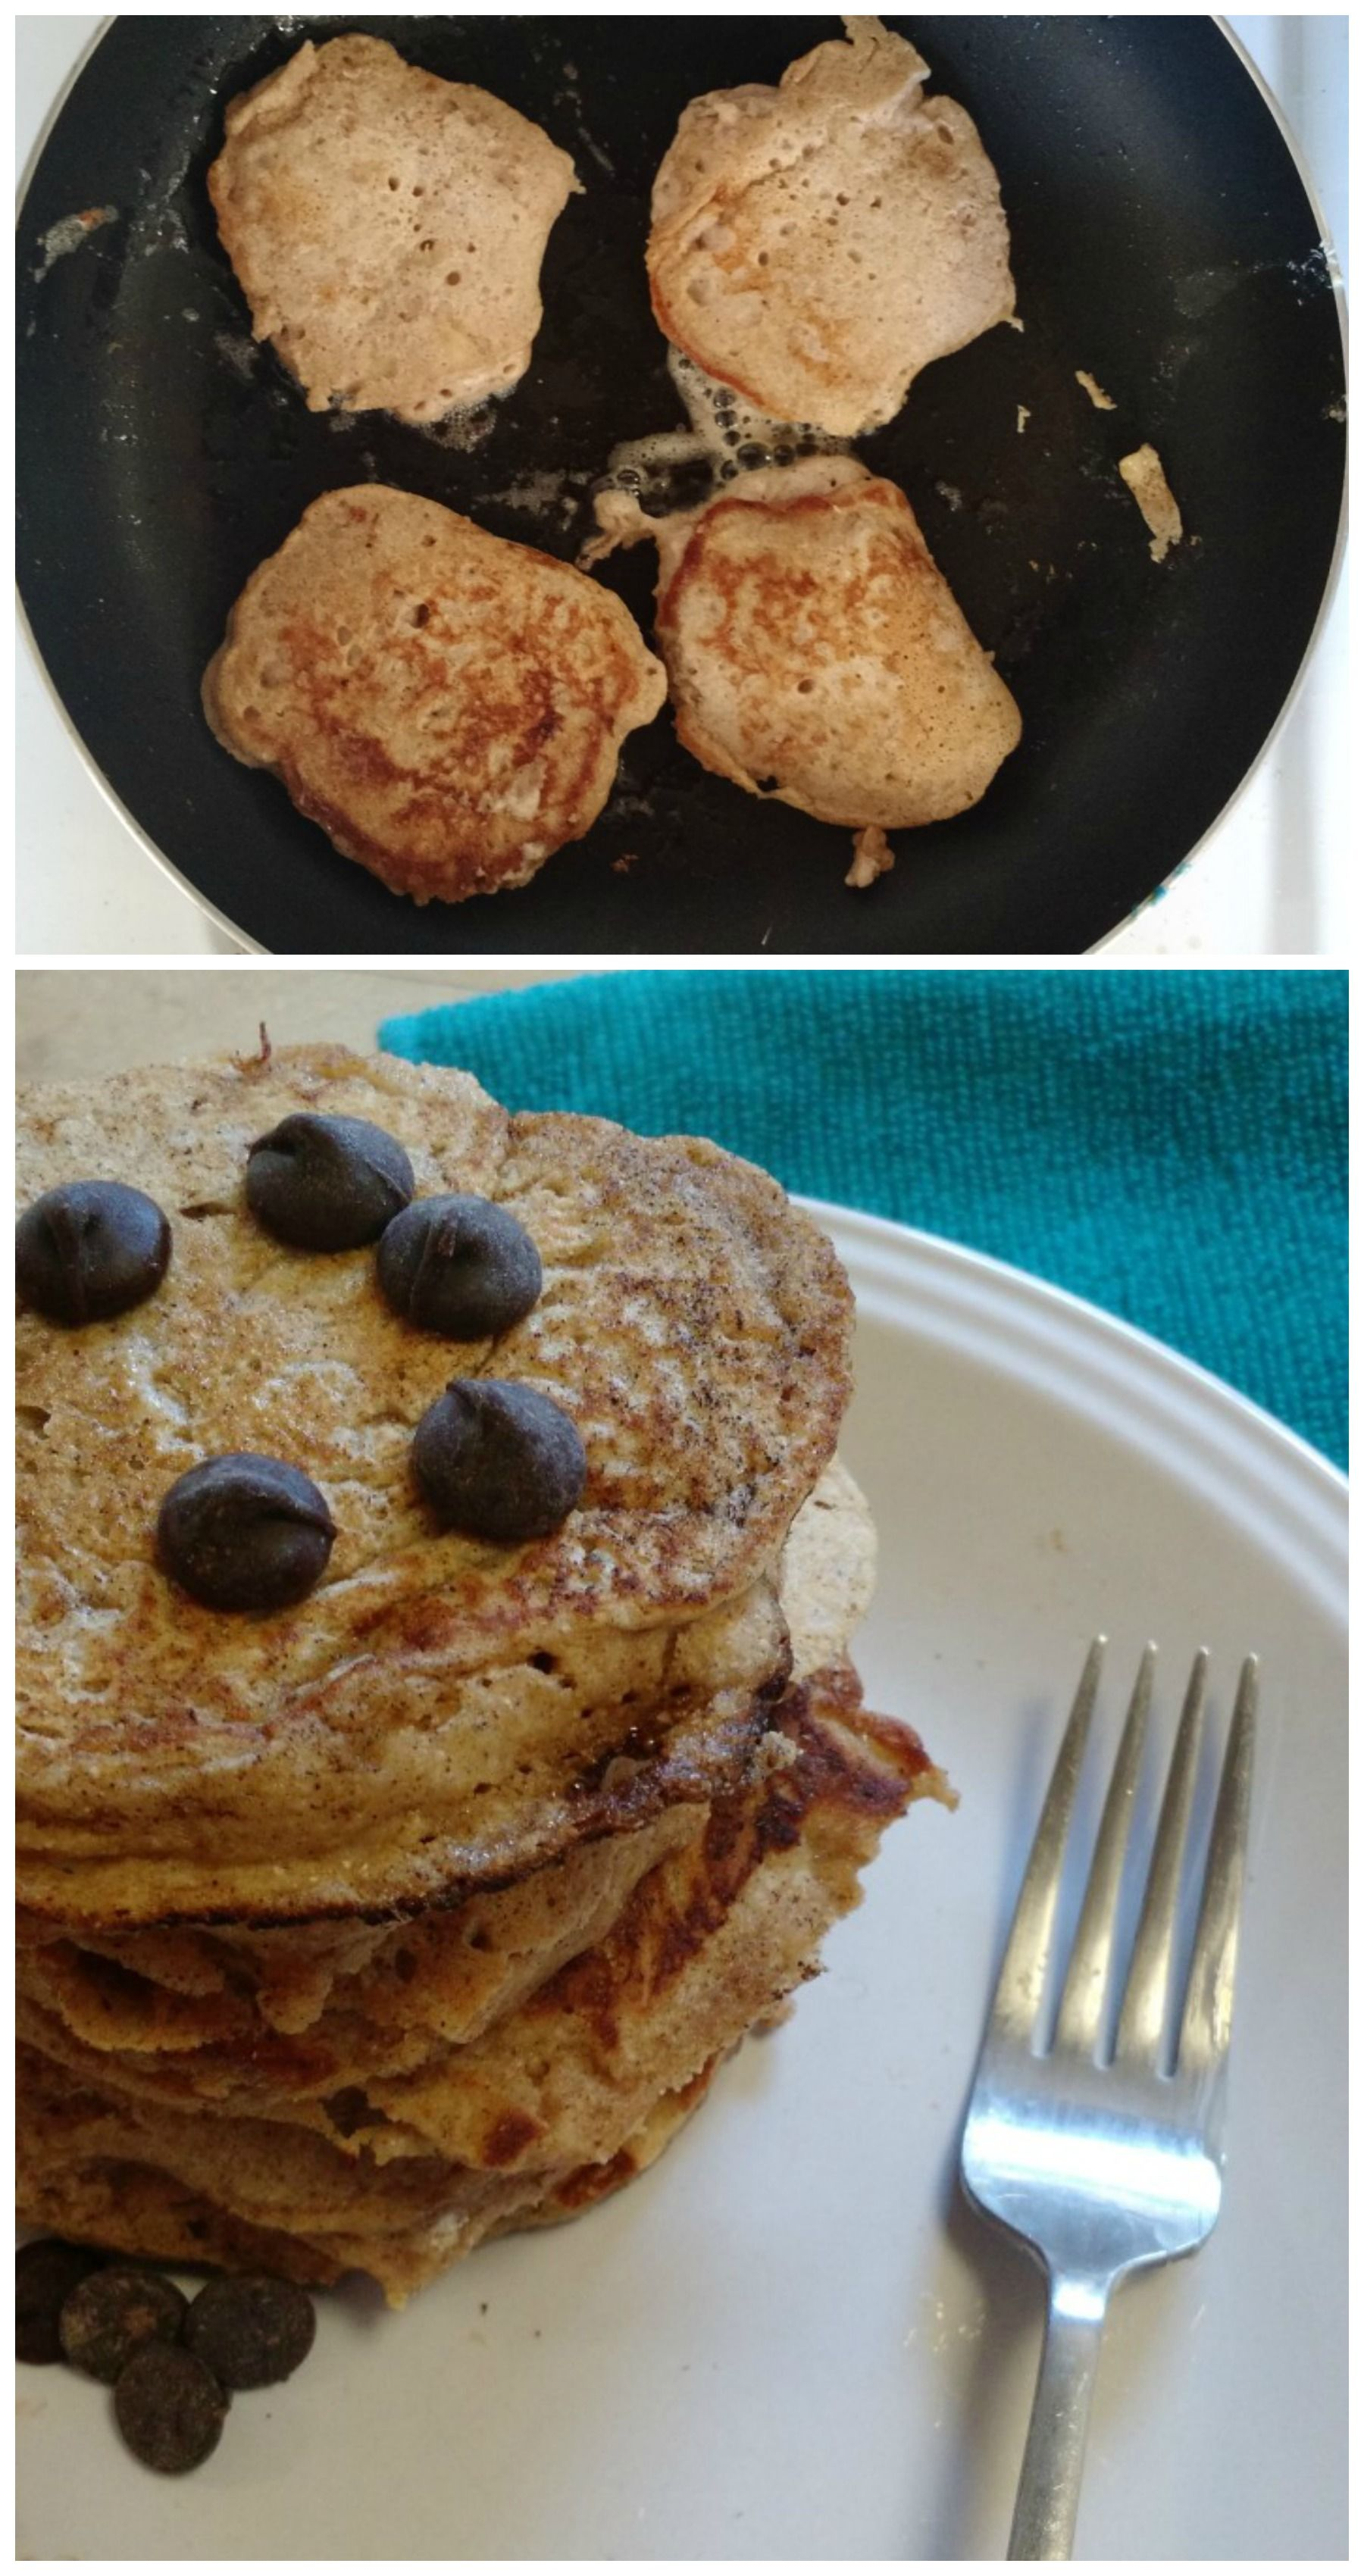 How to make soft and fluffy whole wheat banana pancakes wholewheat how to make soft and fluffy whole wheat banana pancakes wholewheat banana ccuart Image collections